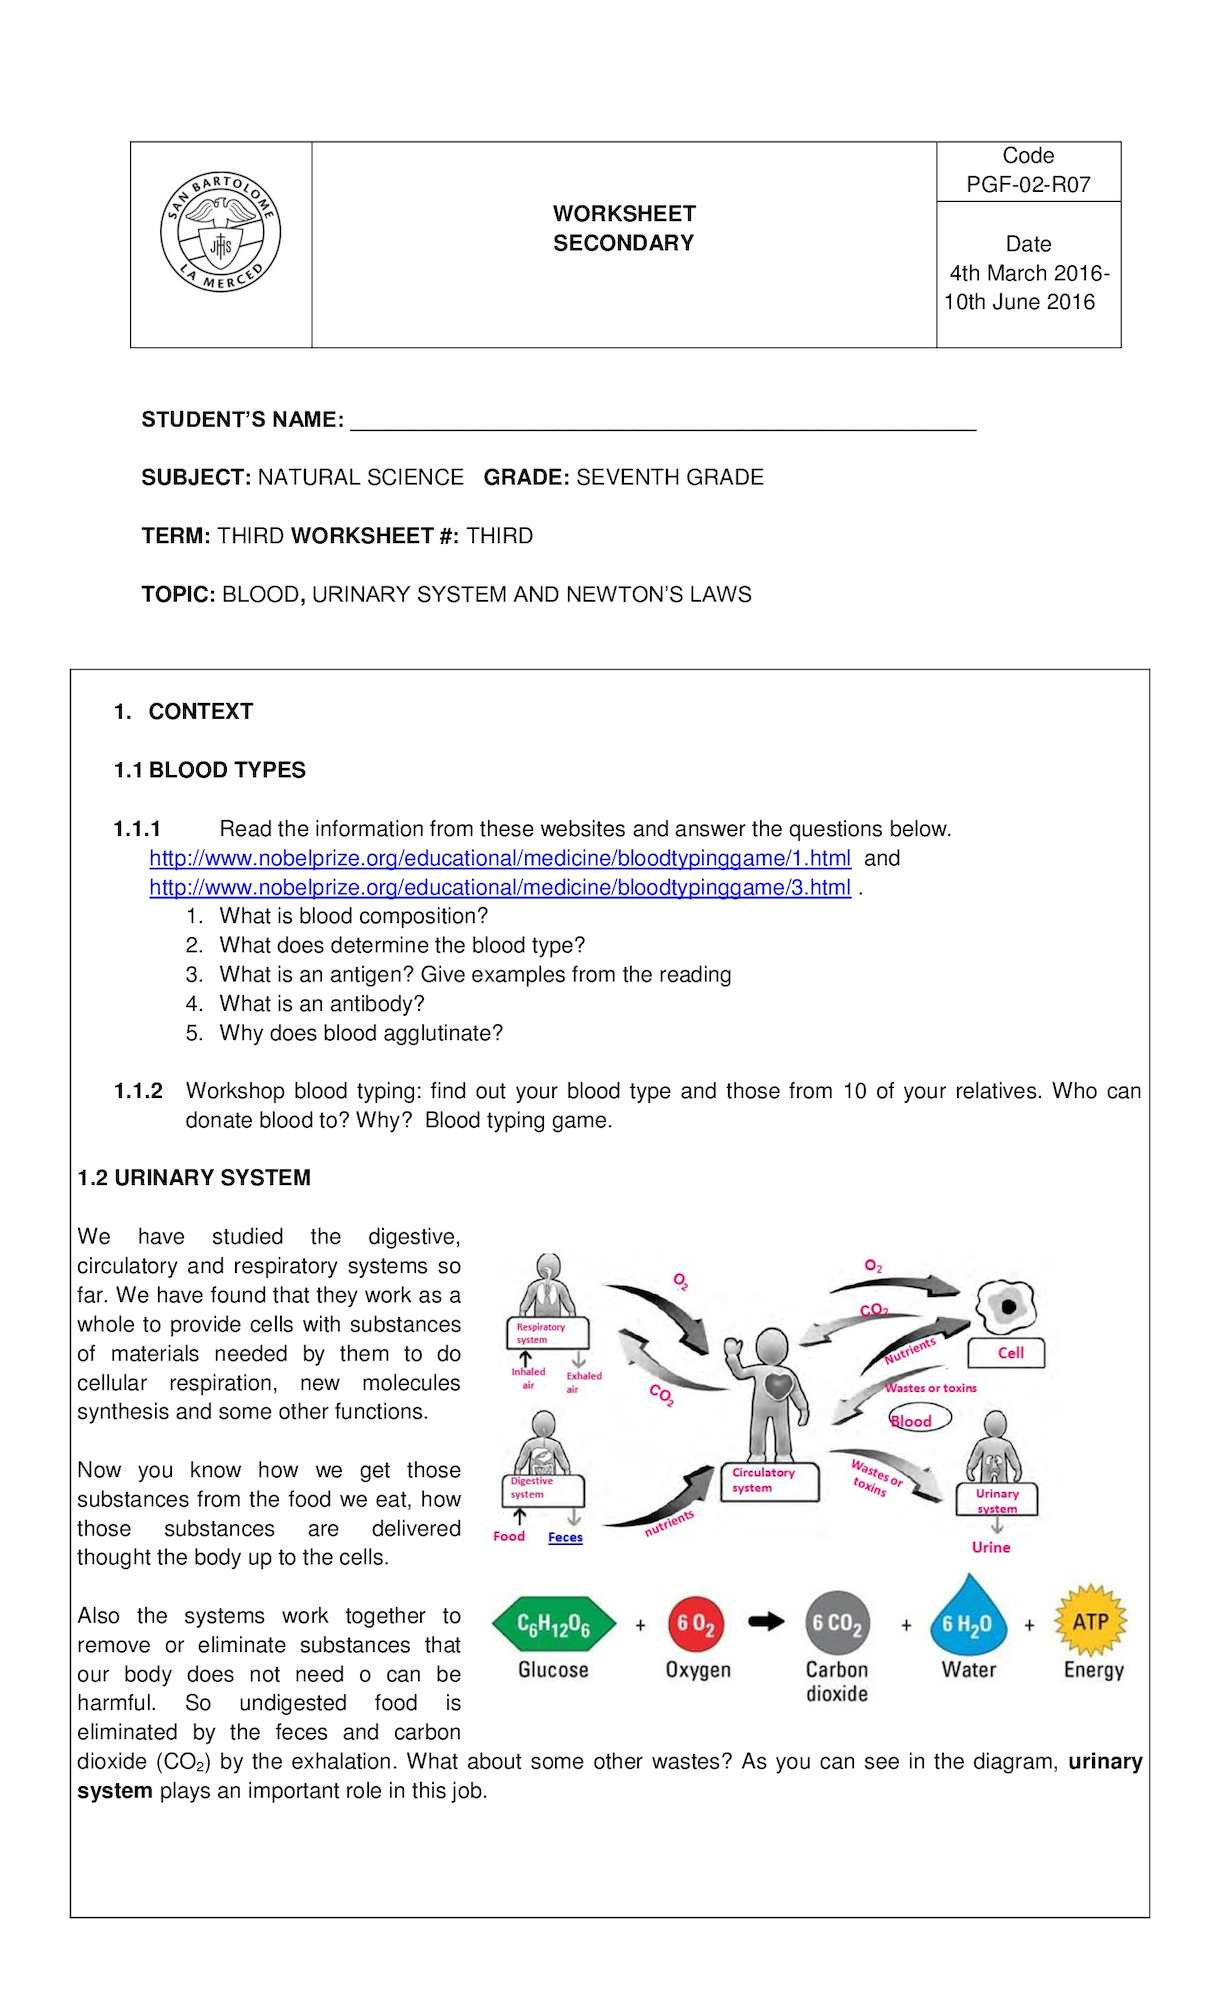 Anatomical Terms Worksheet Answers Calaméo Third Term Worksheet